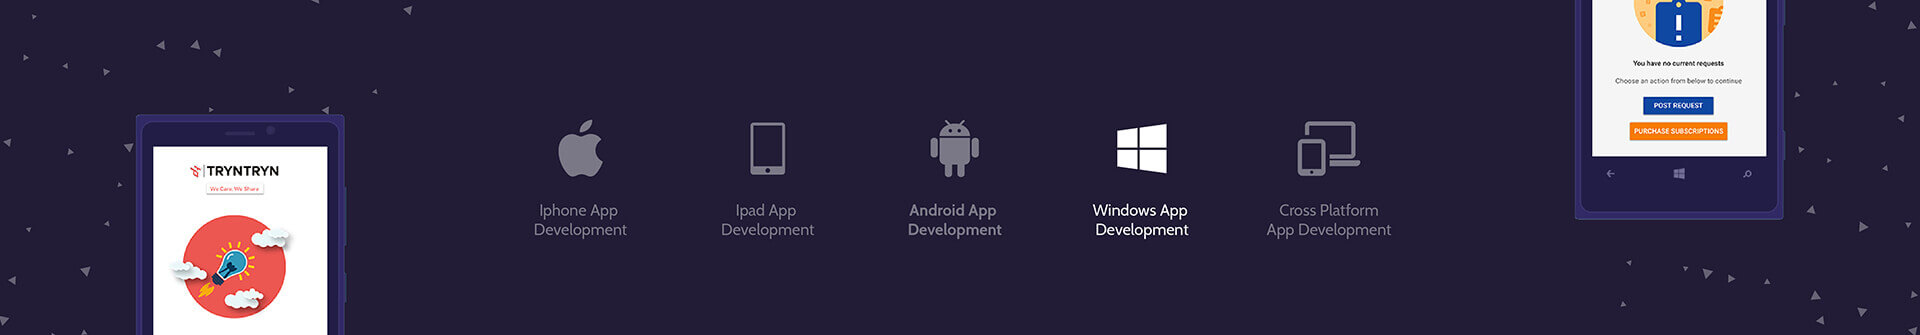 Windows Mobile App Development Company